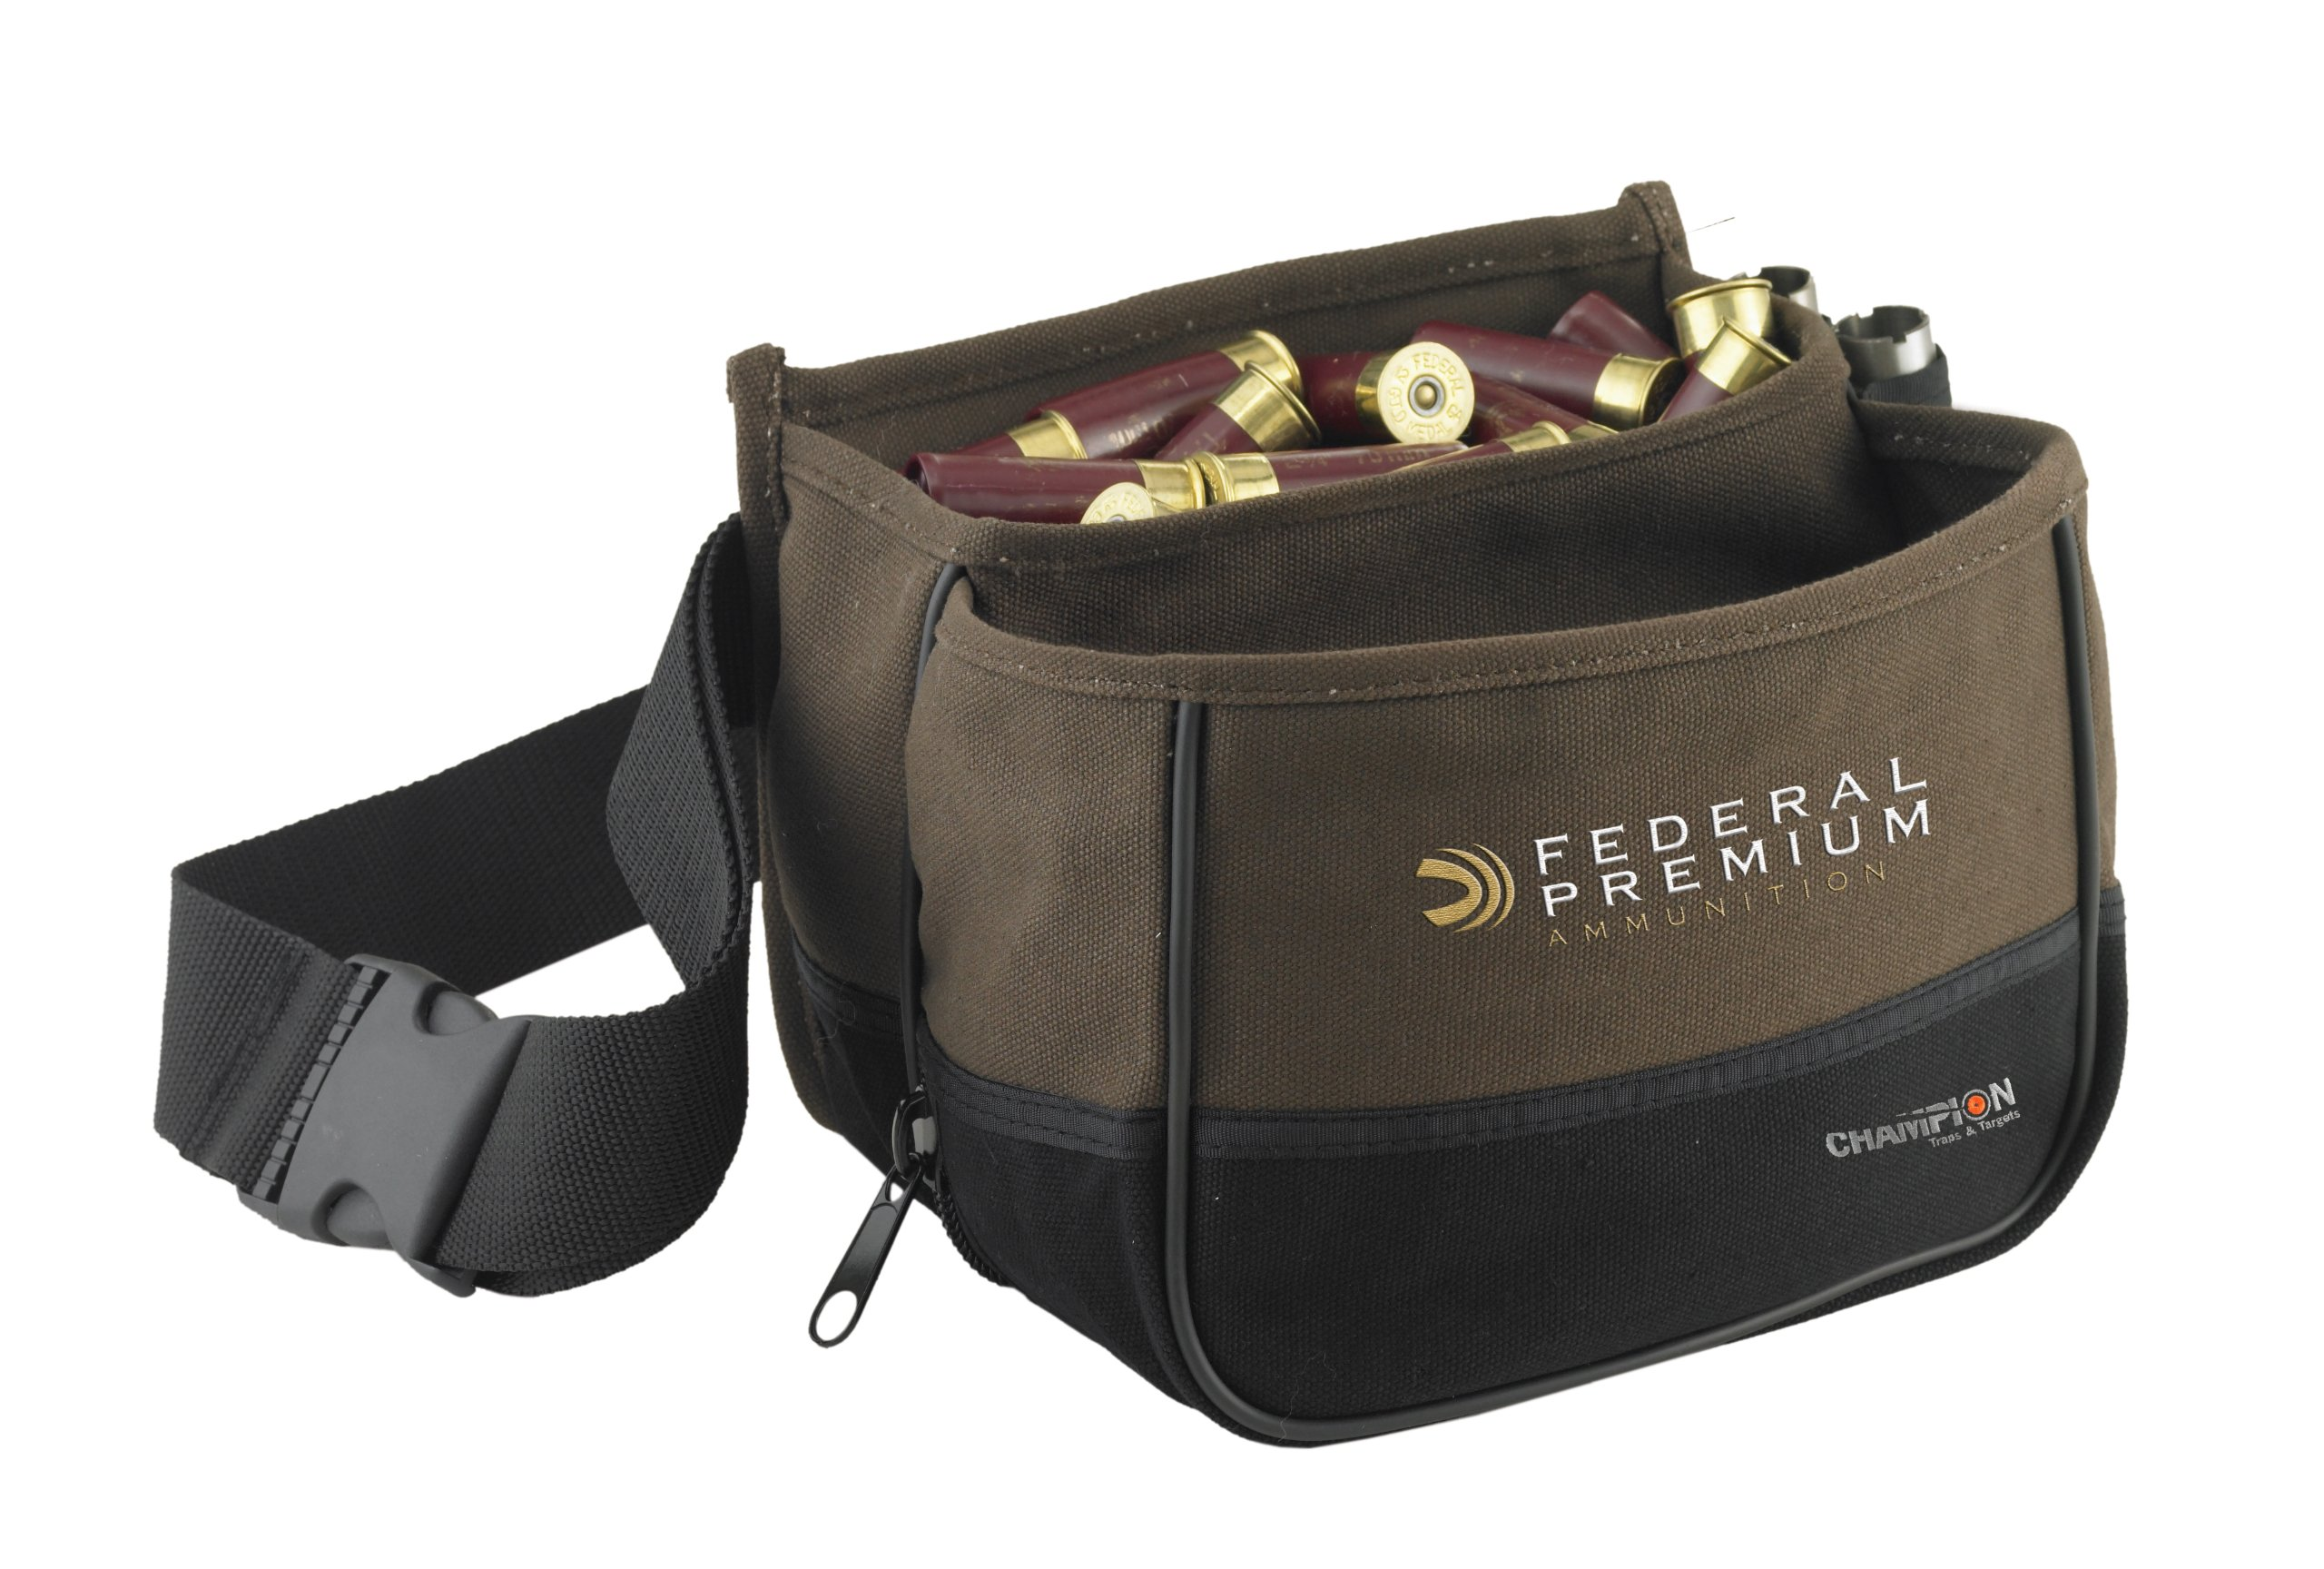 Champion Traps and Targets 45852Trapshooting Double Box Shell Pouch by Champion Traps and Targets (Image #1)